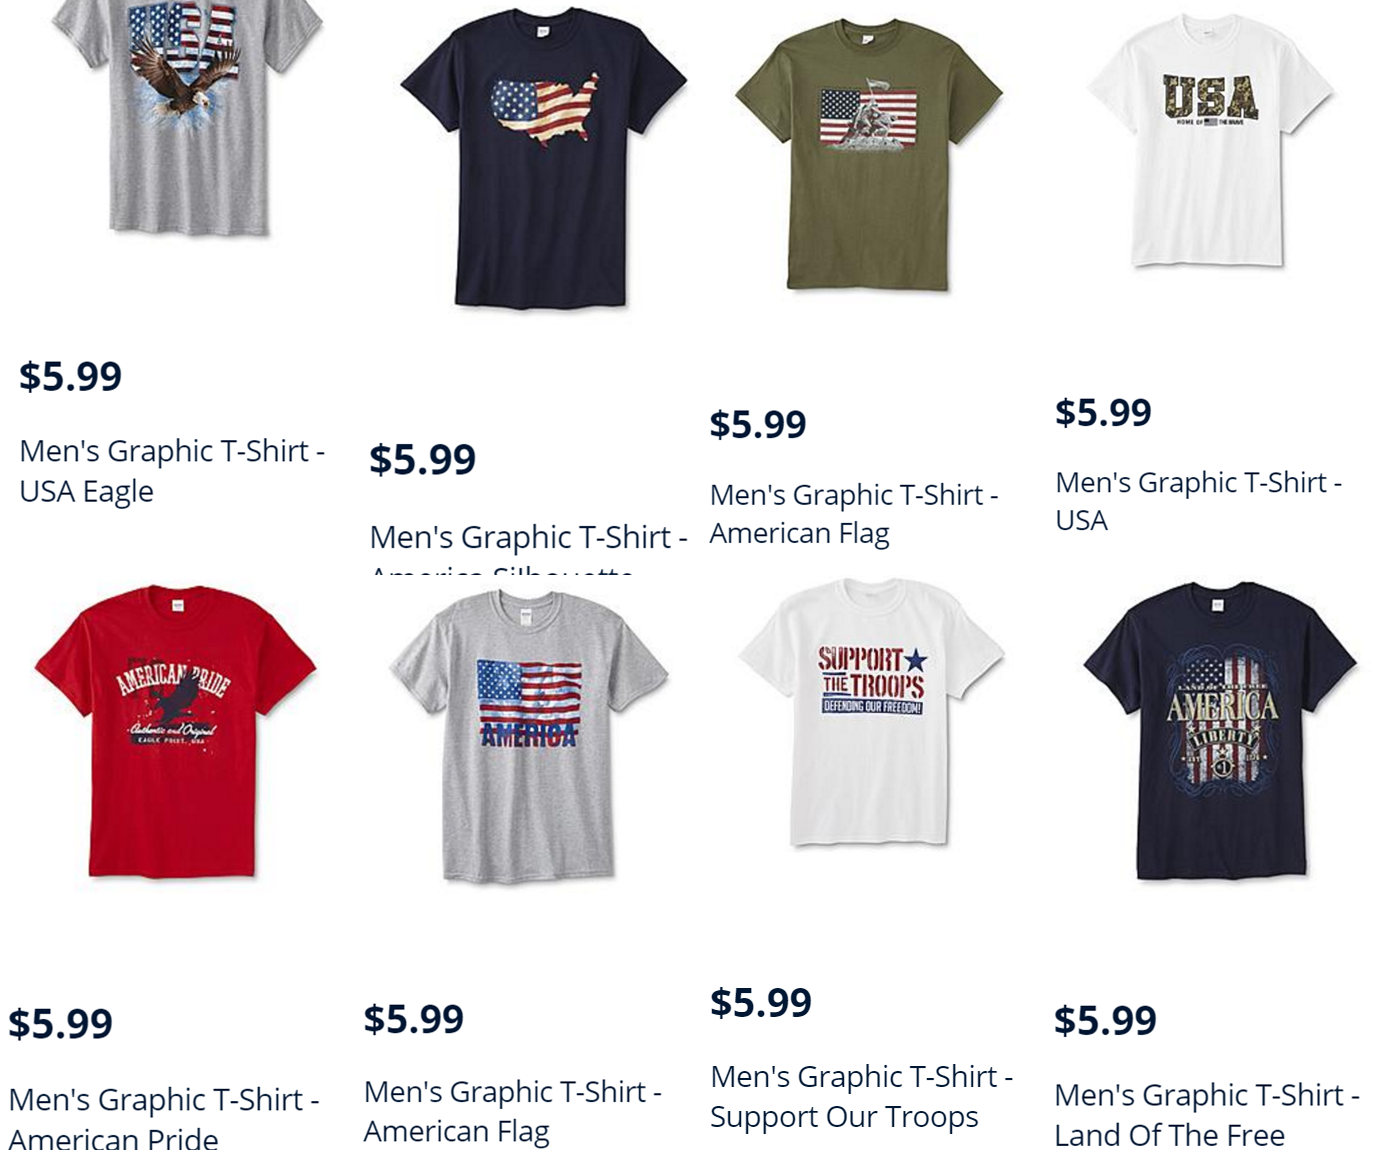 244d7048349 DEAD]Kmart: Moneymaker Men's T-Shirts – Points Roll! Must Pay $0.01 Oop